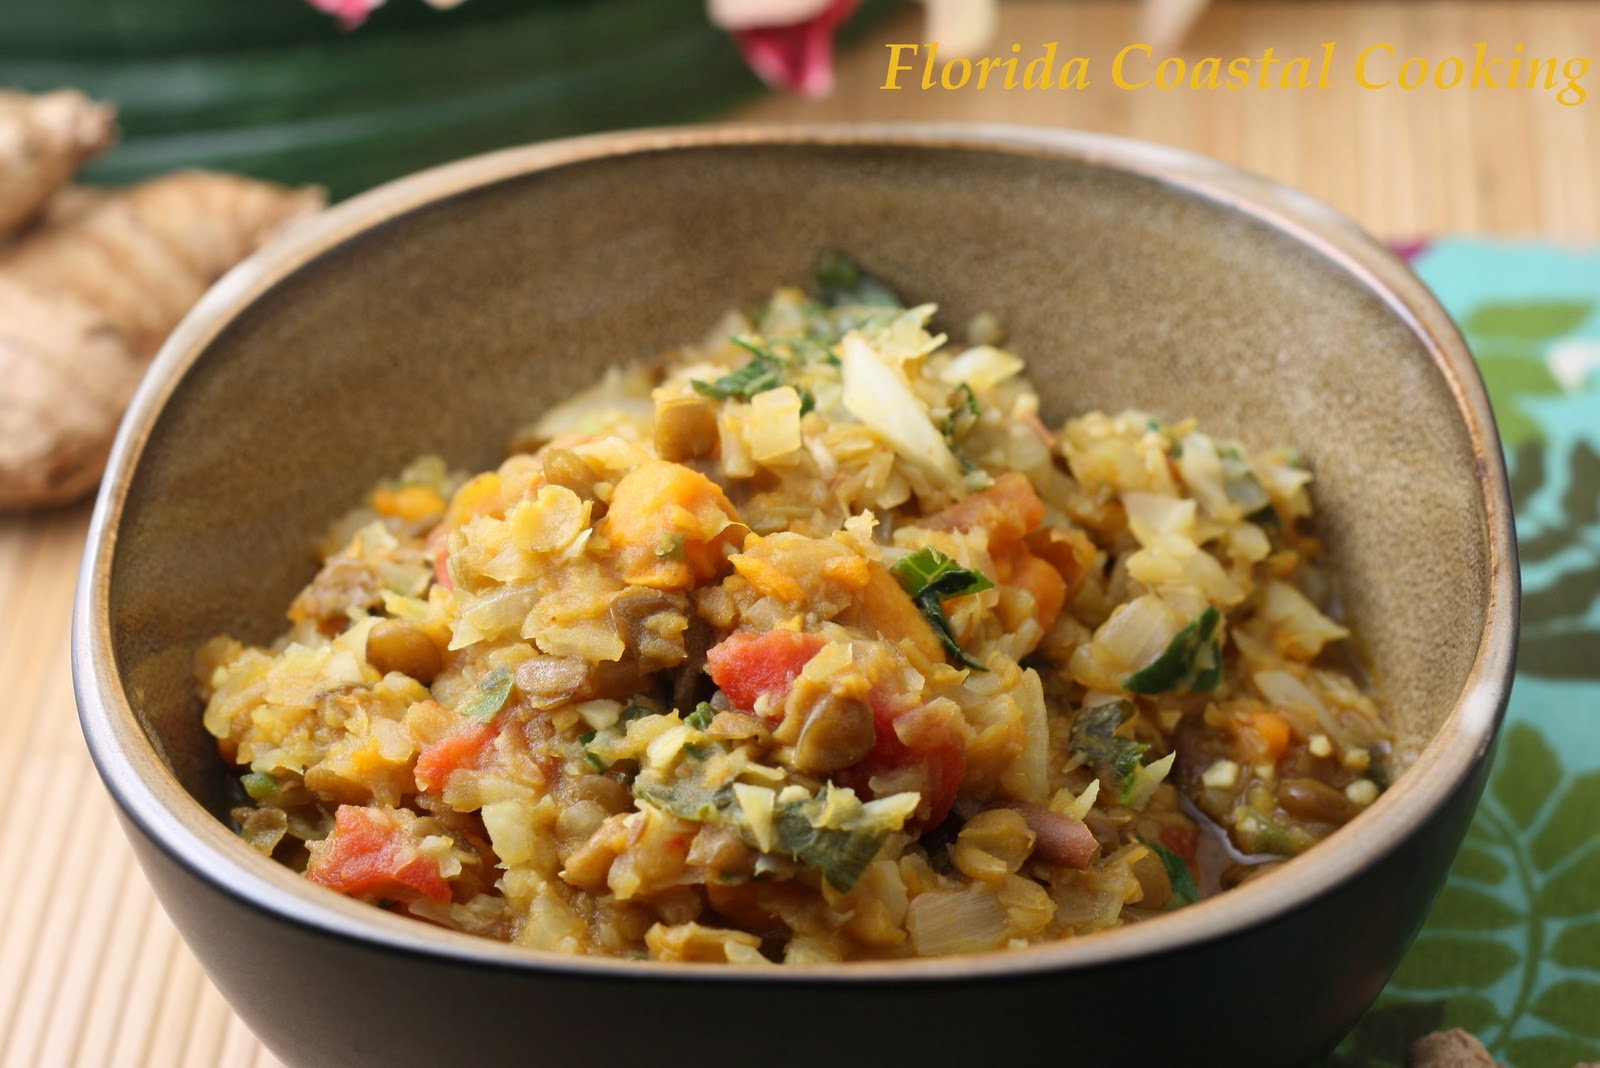 Green Lentils With Ginger Coconut Milk Sweet Potato And Cabbage